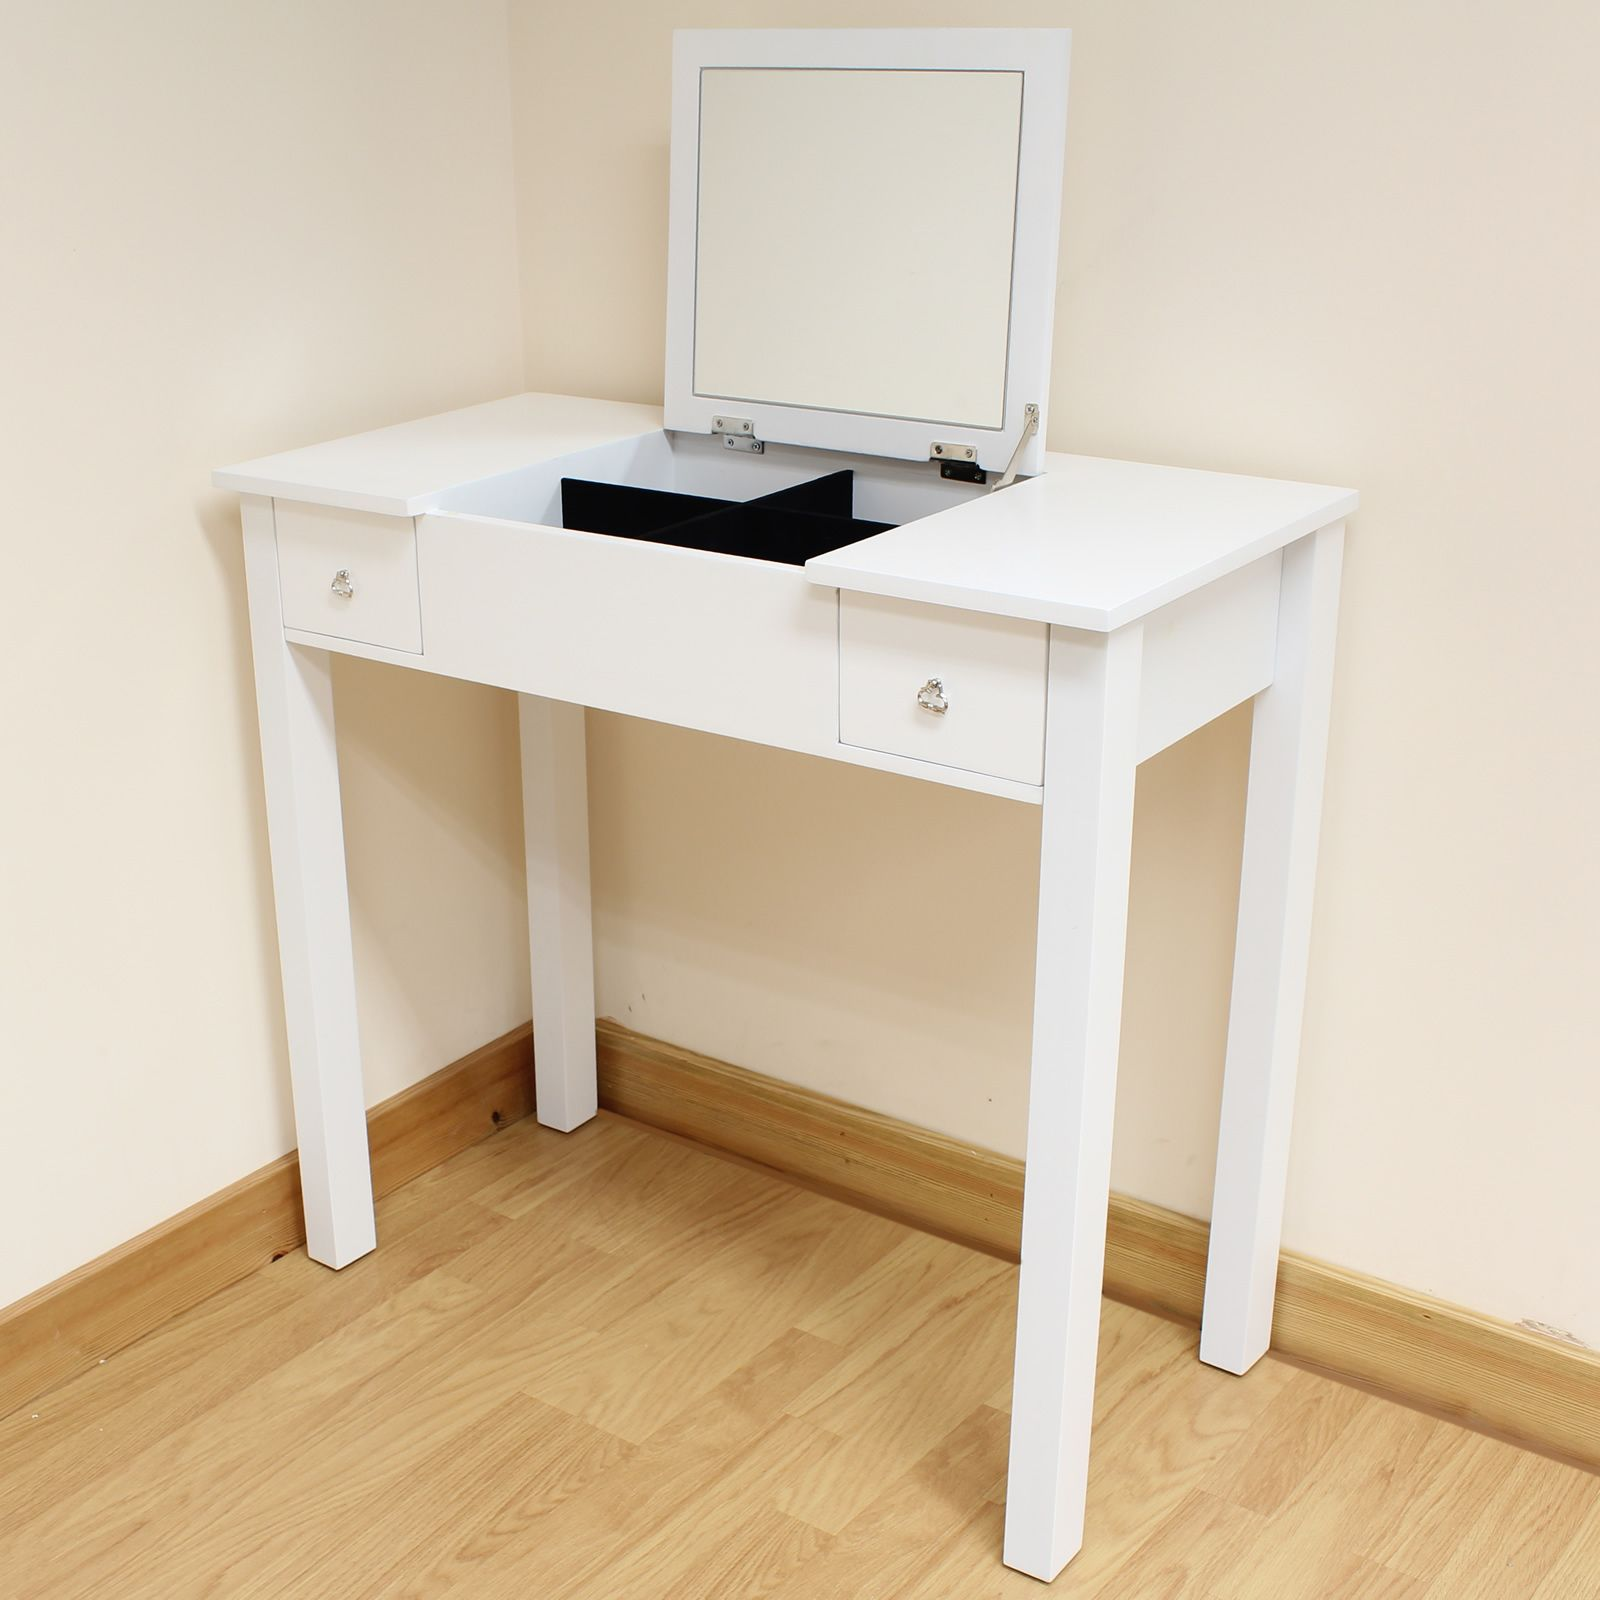 White dressing room bedroom vanity make up table desk for Makeup vanity table and mirror